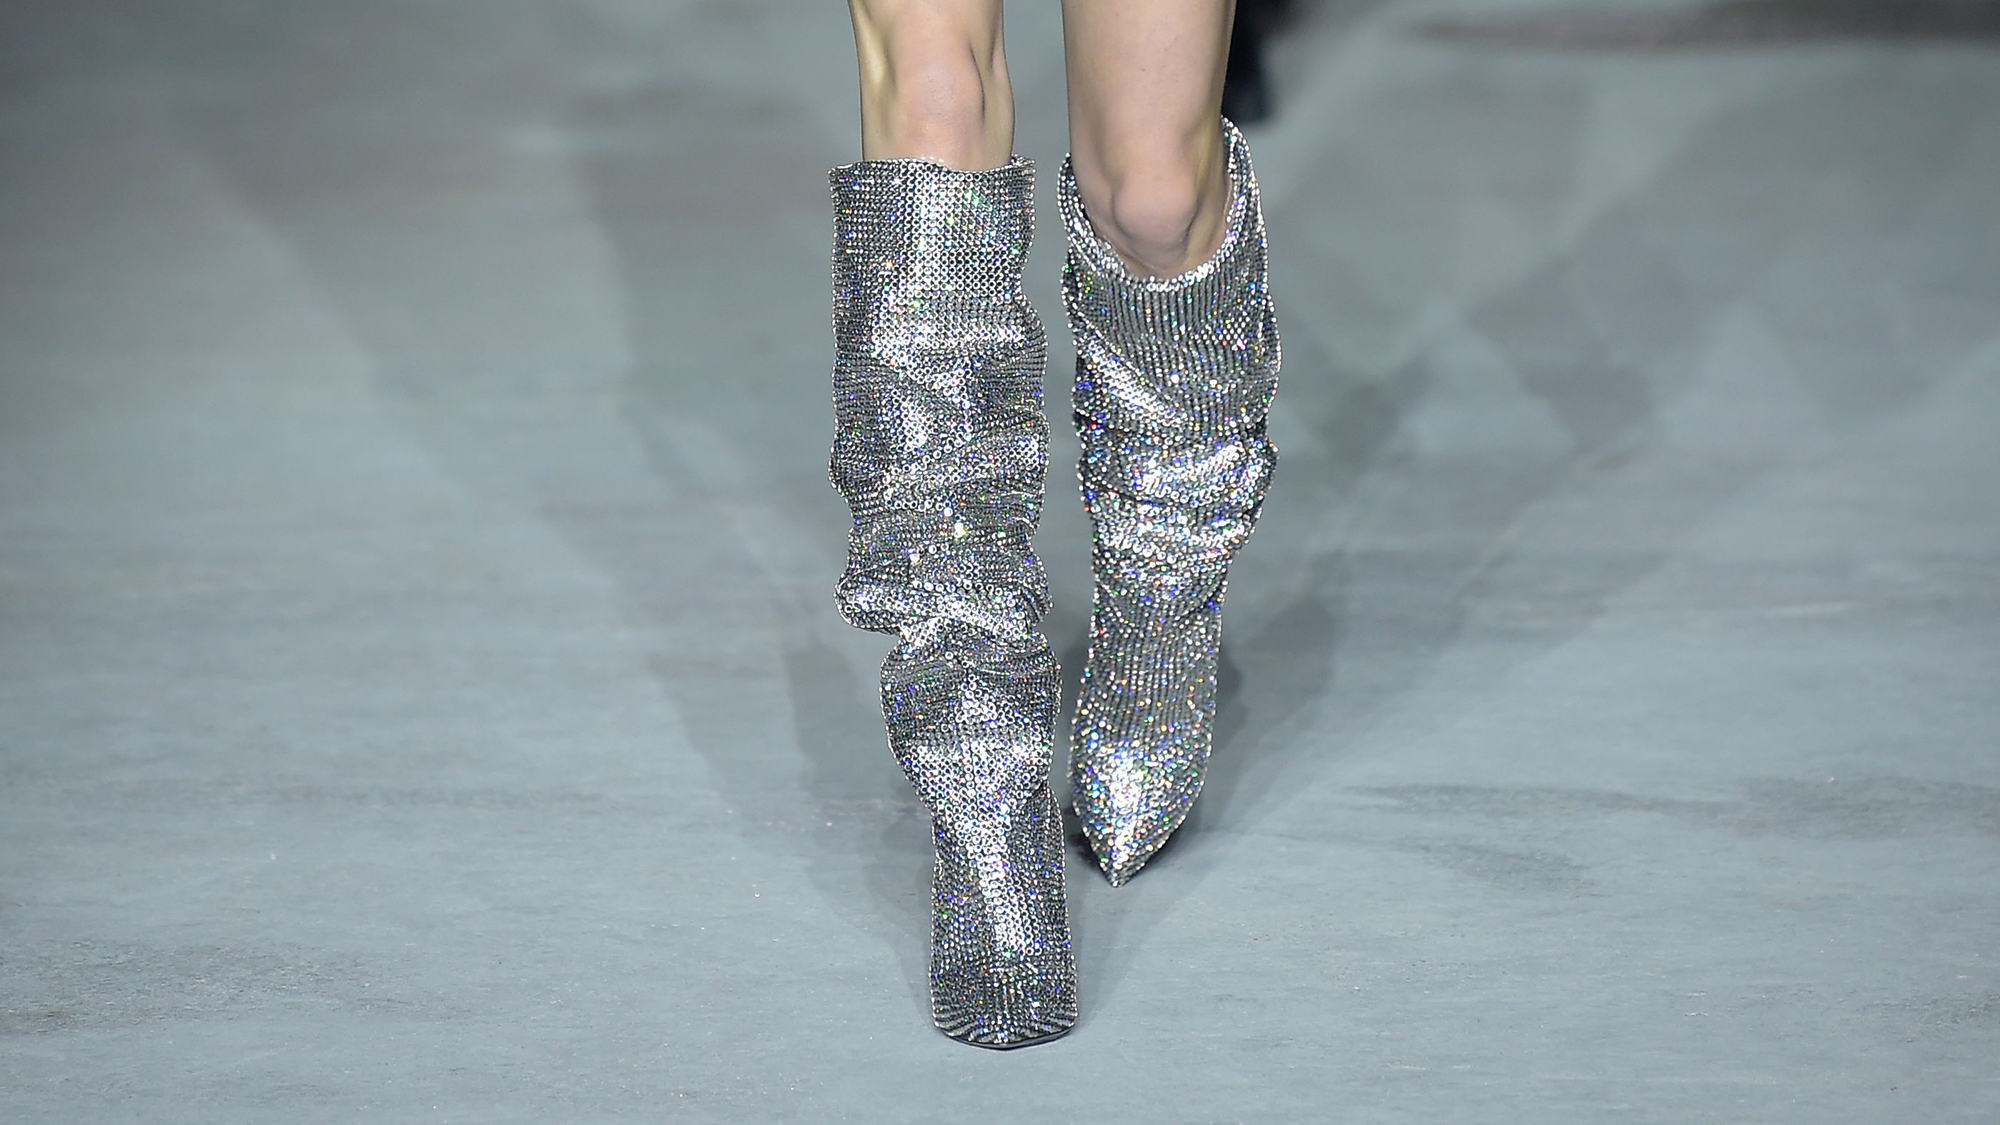 Saint Laurent S Glitter Boots Are What Dreams Are Made Of